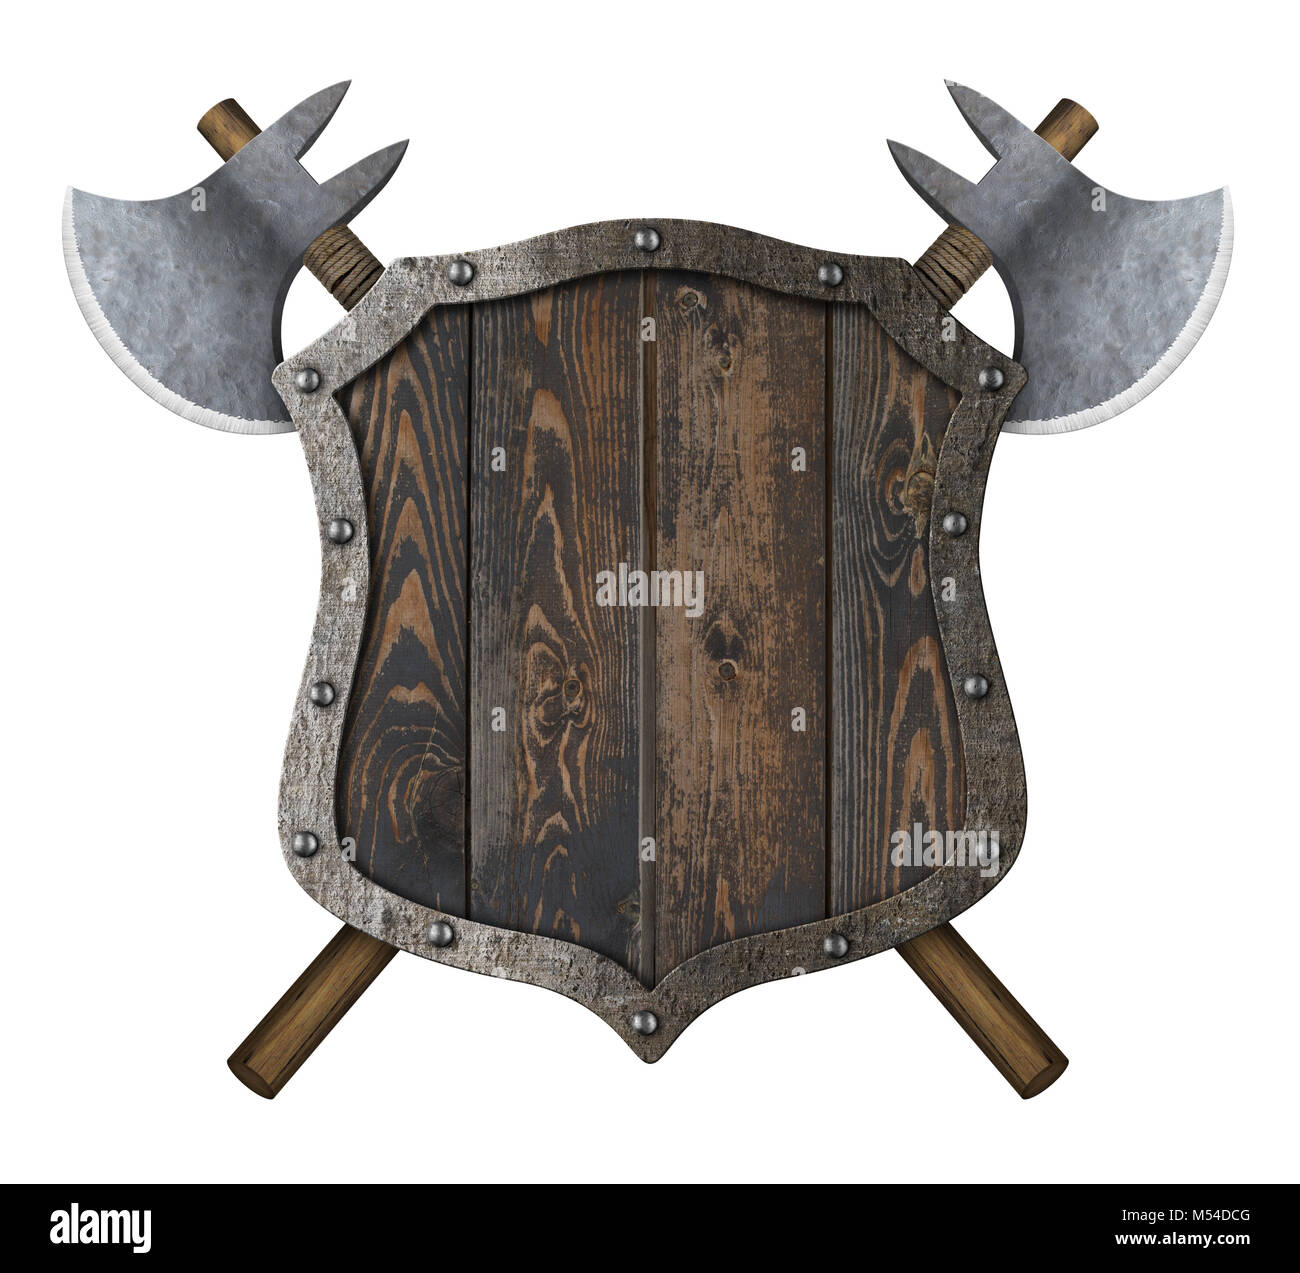 Wooden medieval heraldic shield with crossed battle axes 3d illustration - Stock Image